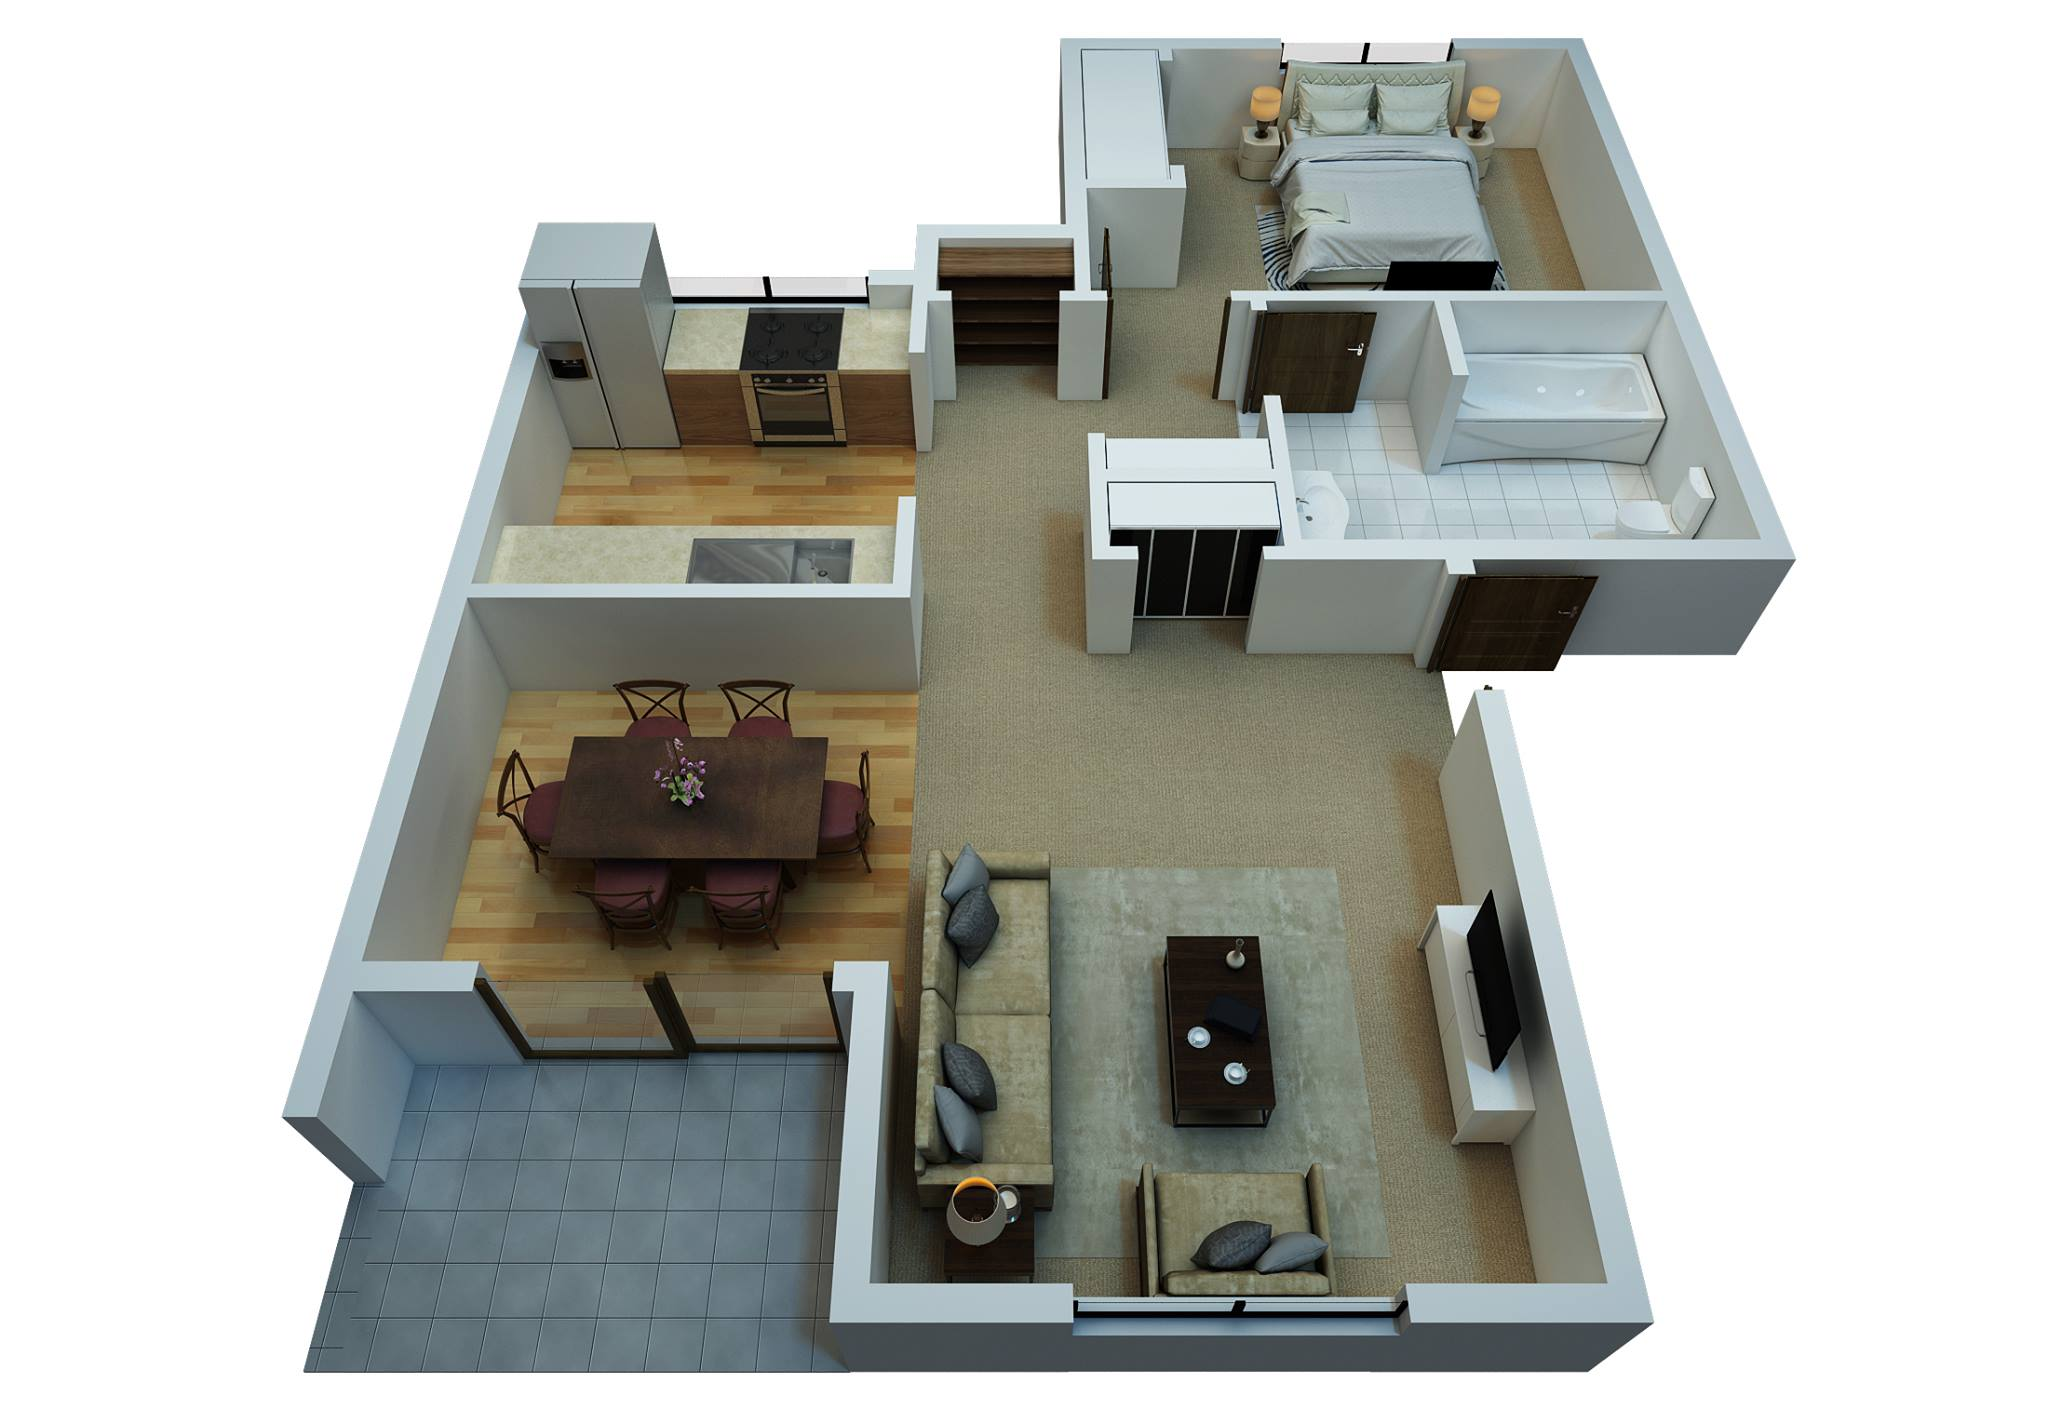 SEE OUR FLOOR PLANS